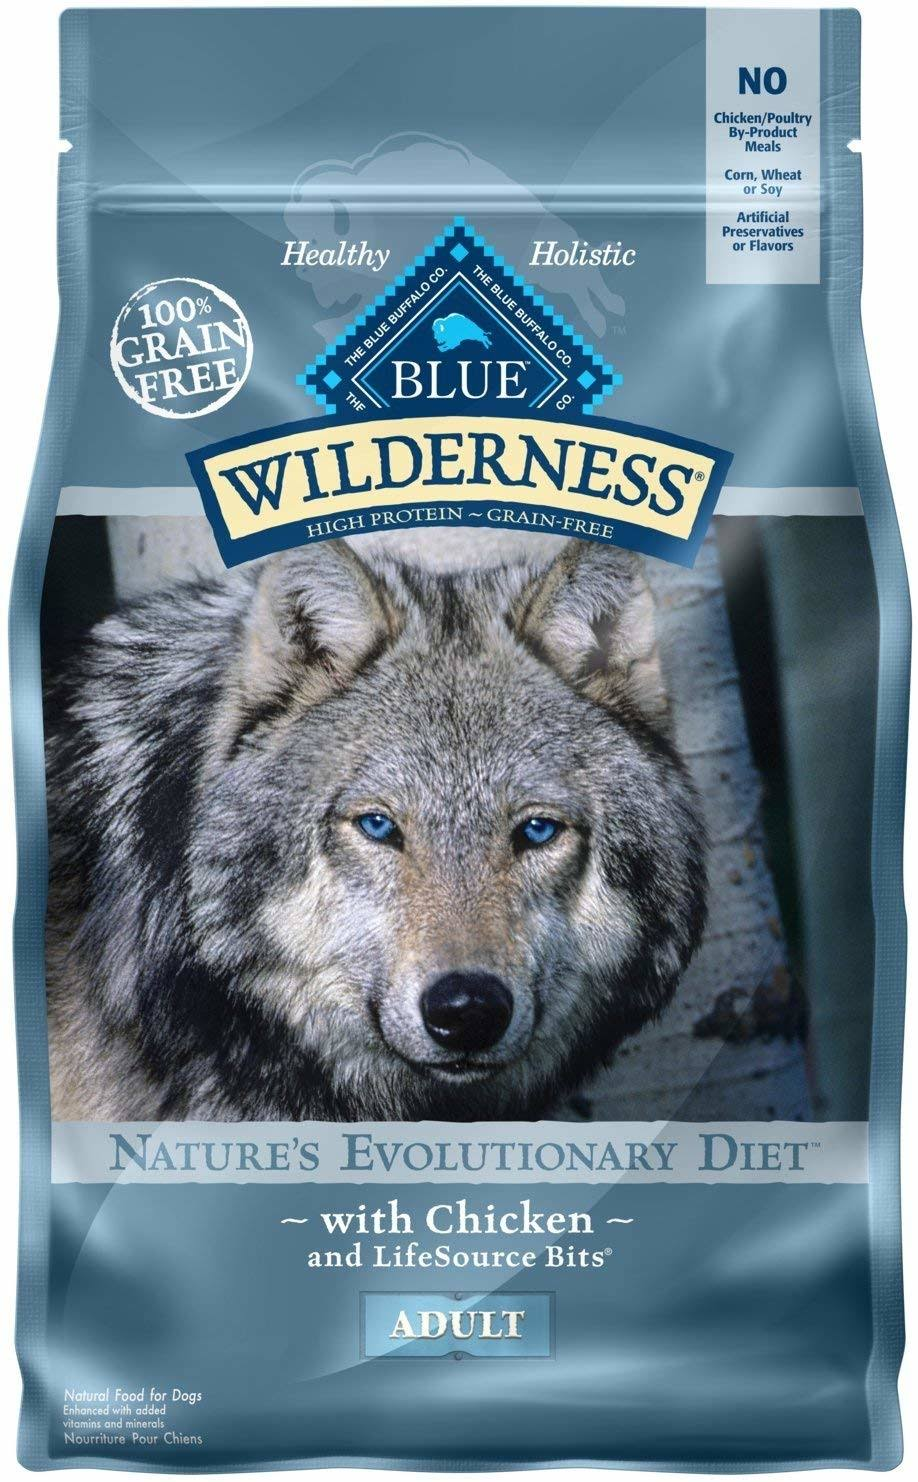 Blue Buffalo Wilderness Adult Dog Food - Chicken Recipe, 4.5lbs